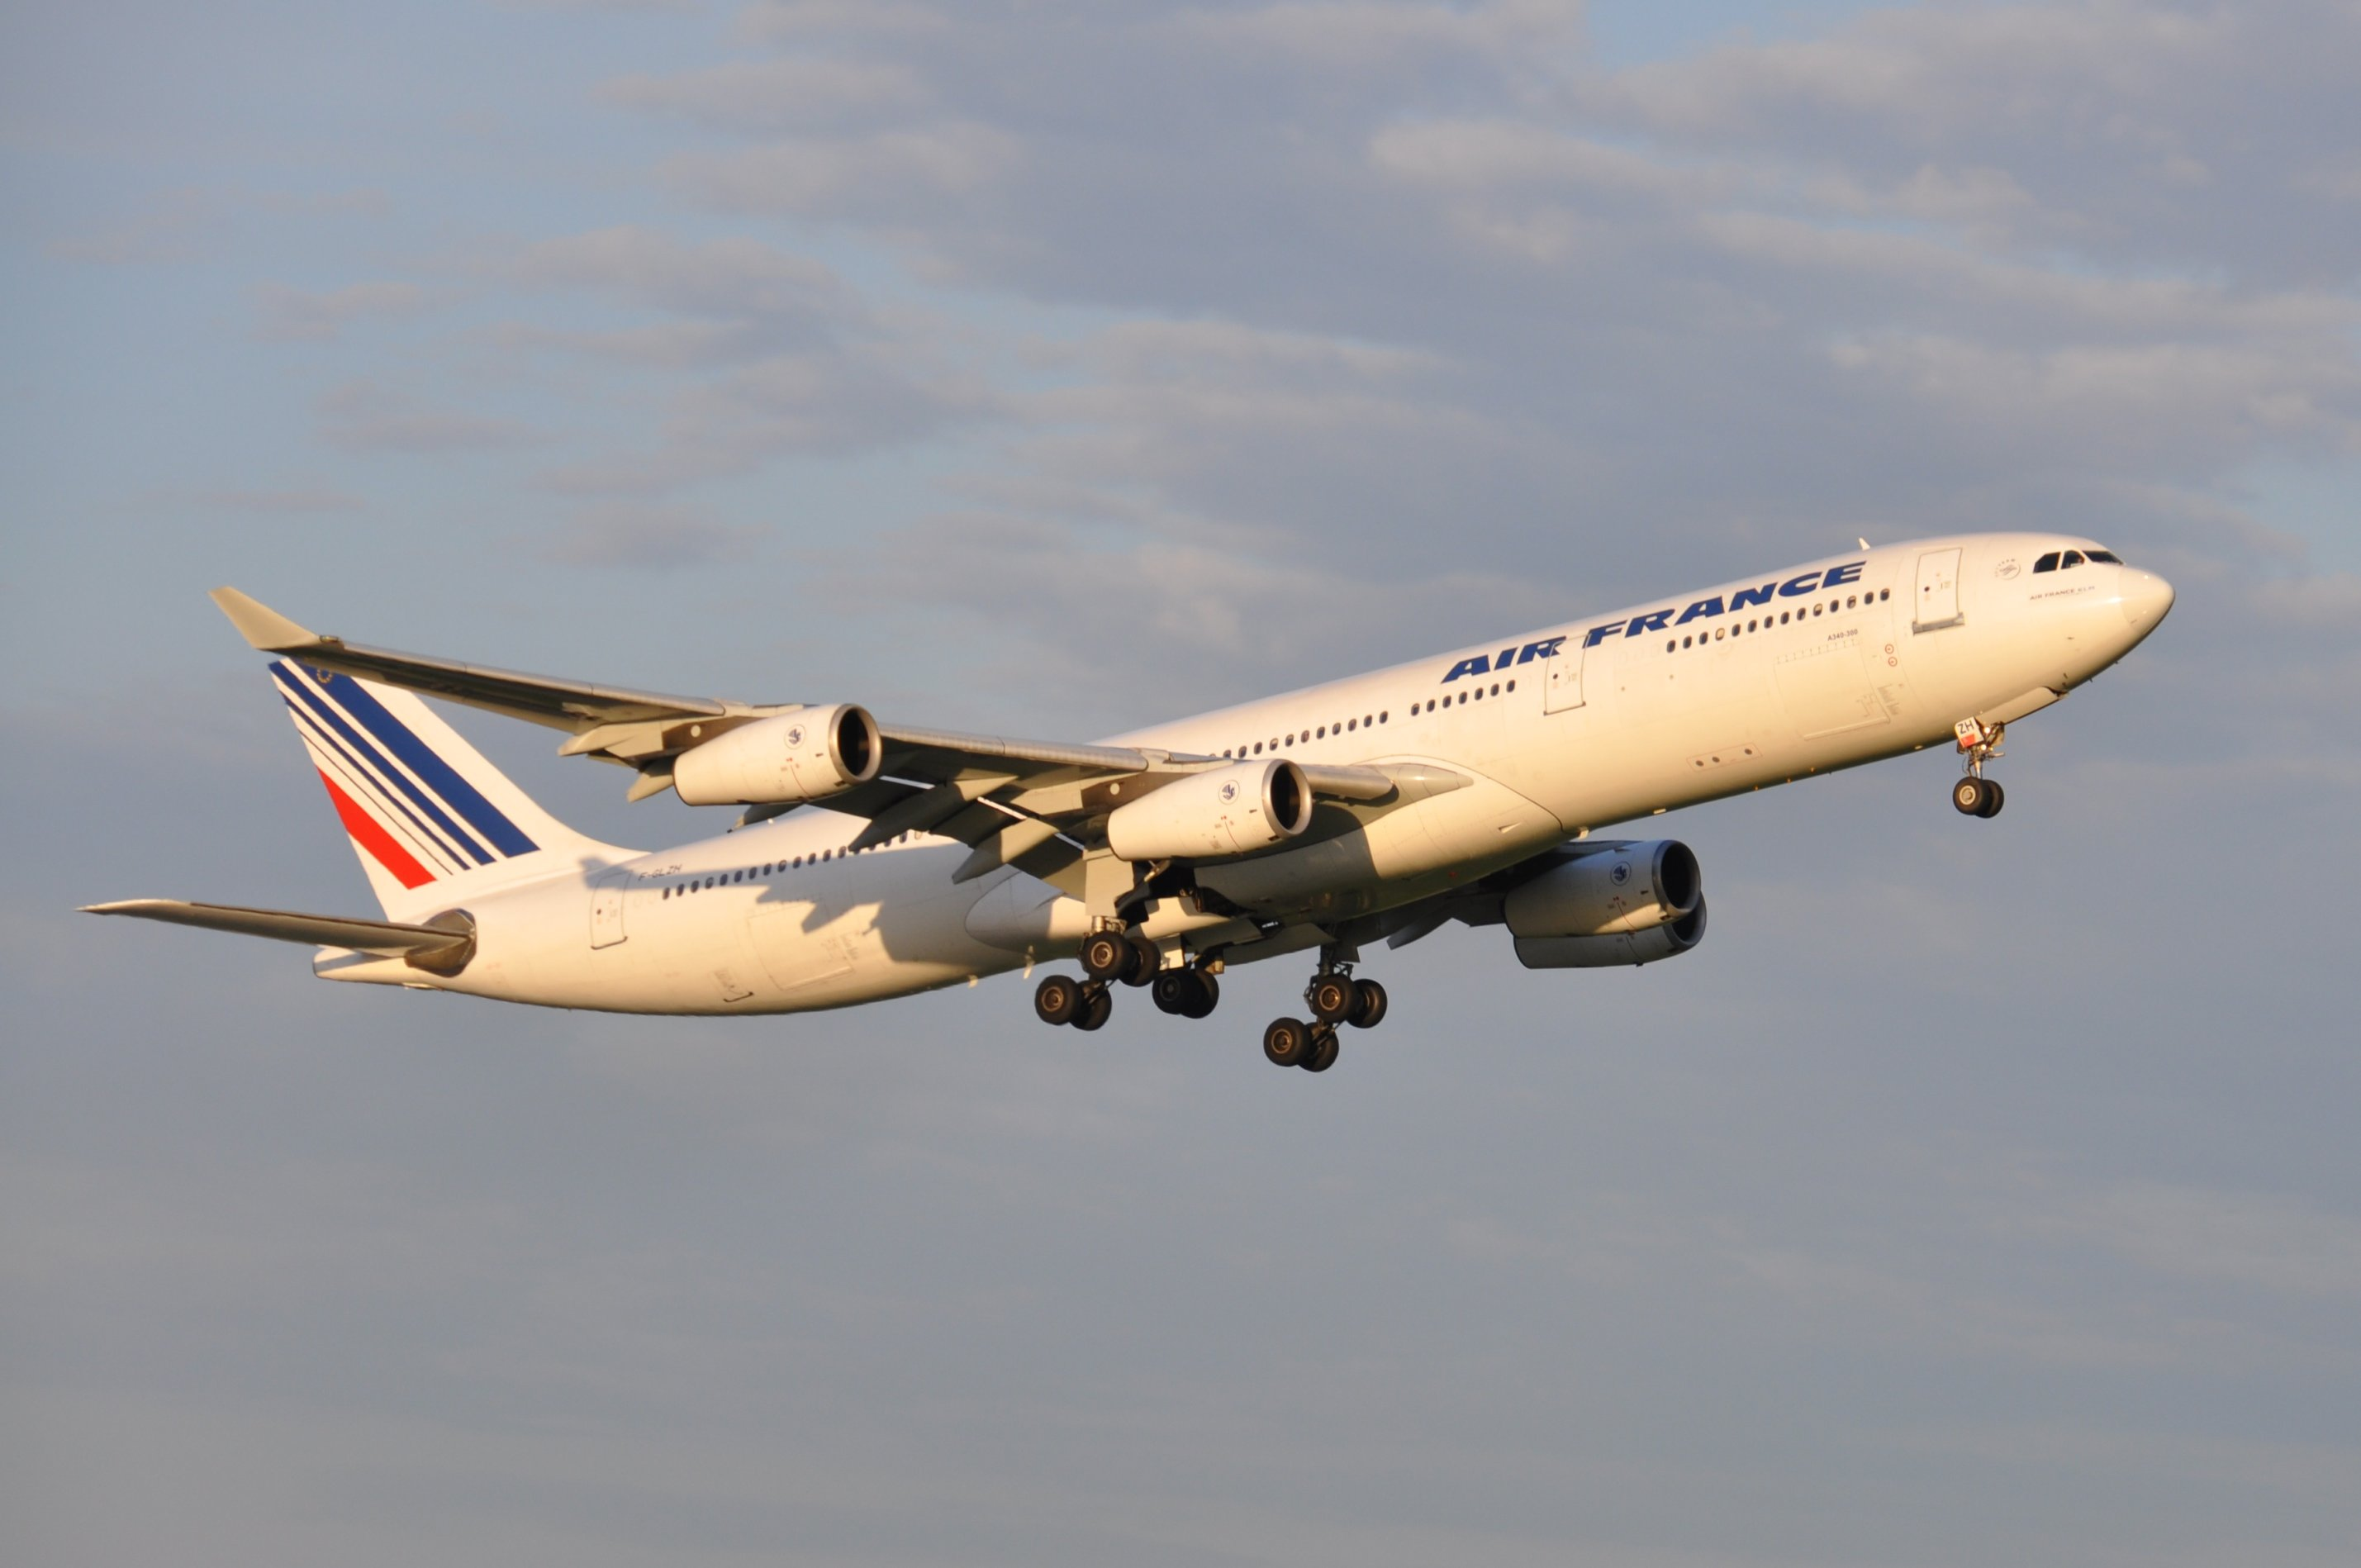 file air france airbus a340 300 f wikimedia commons. Black Bedroom Furniture Sets. Home Design Ideas